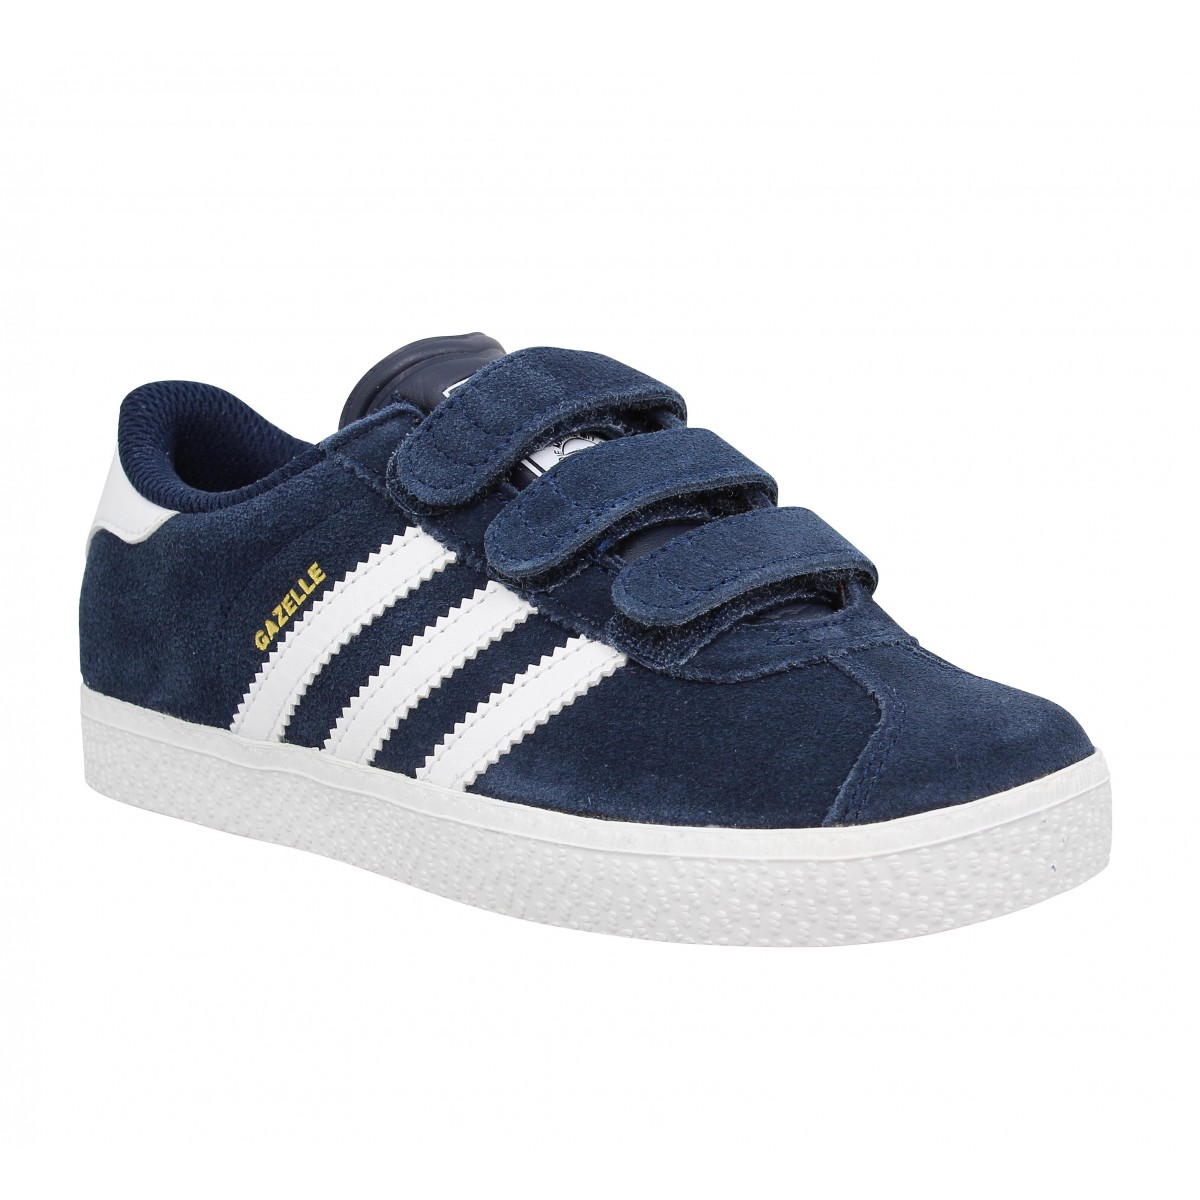 Baskets ADIDAS Gazelle 3 velcro Enfant Navy